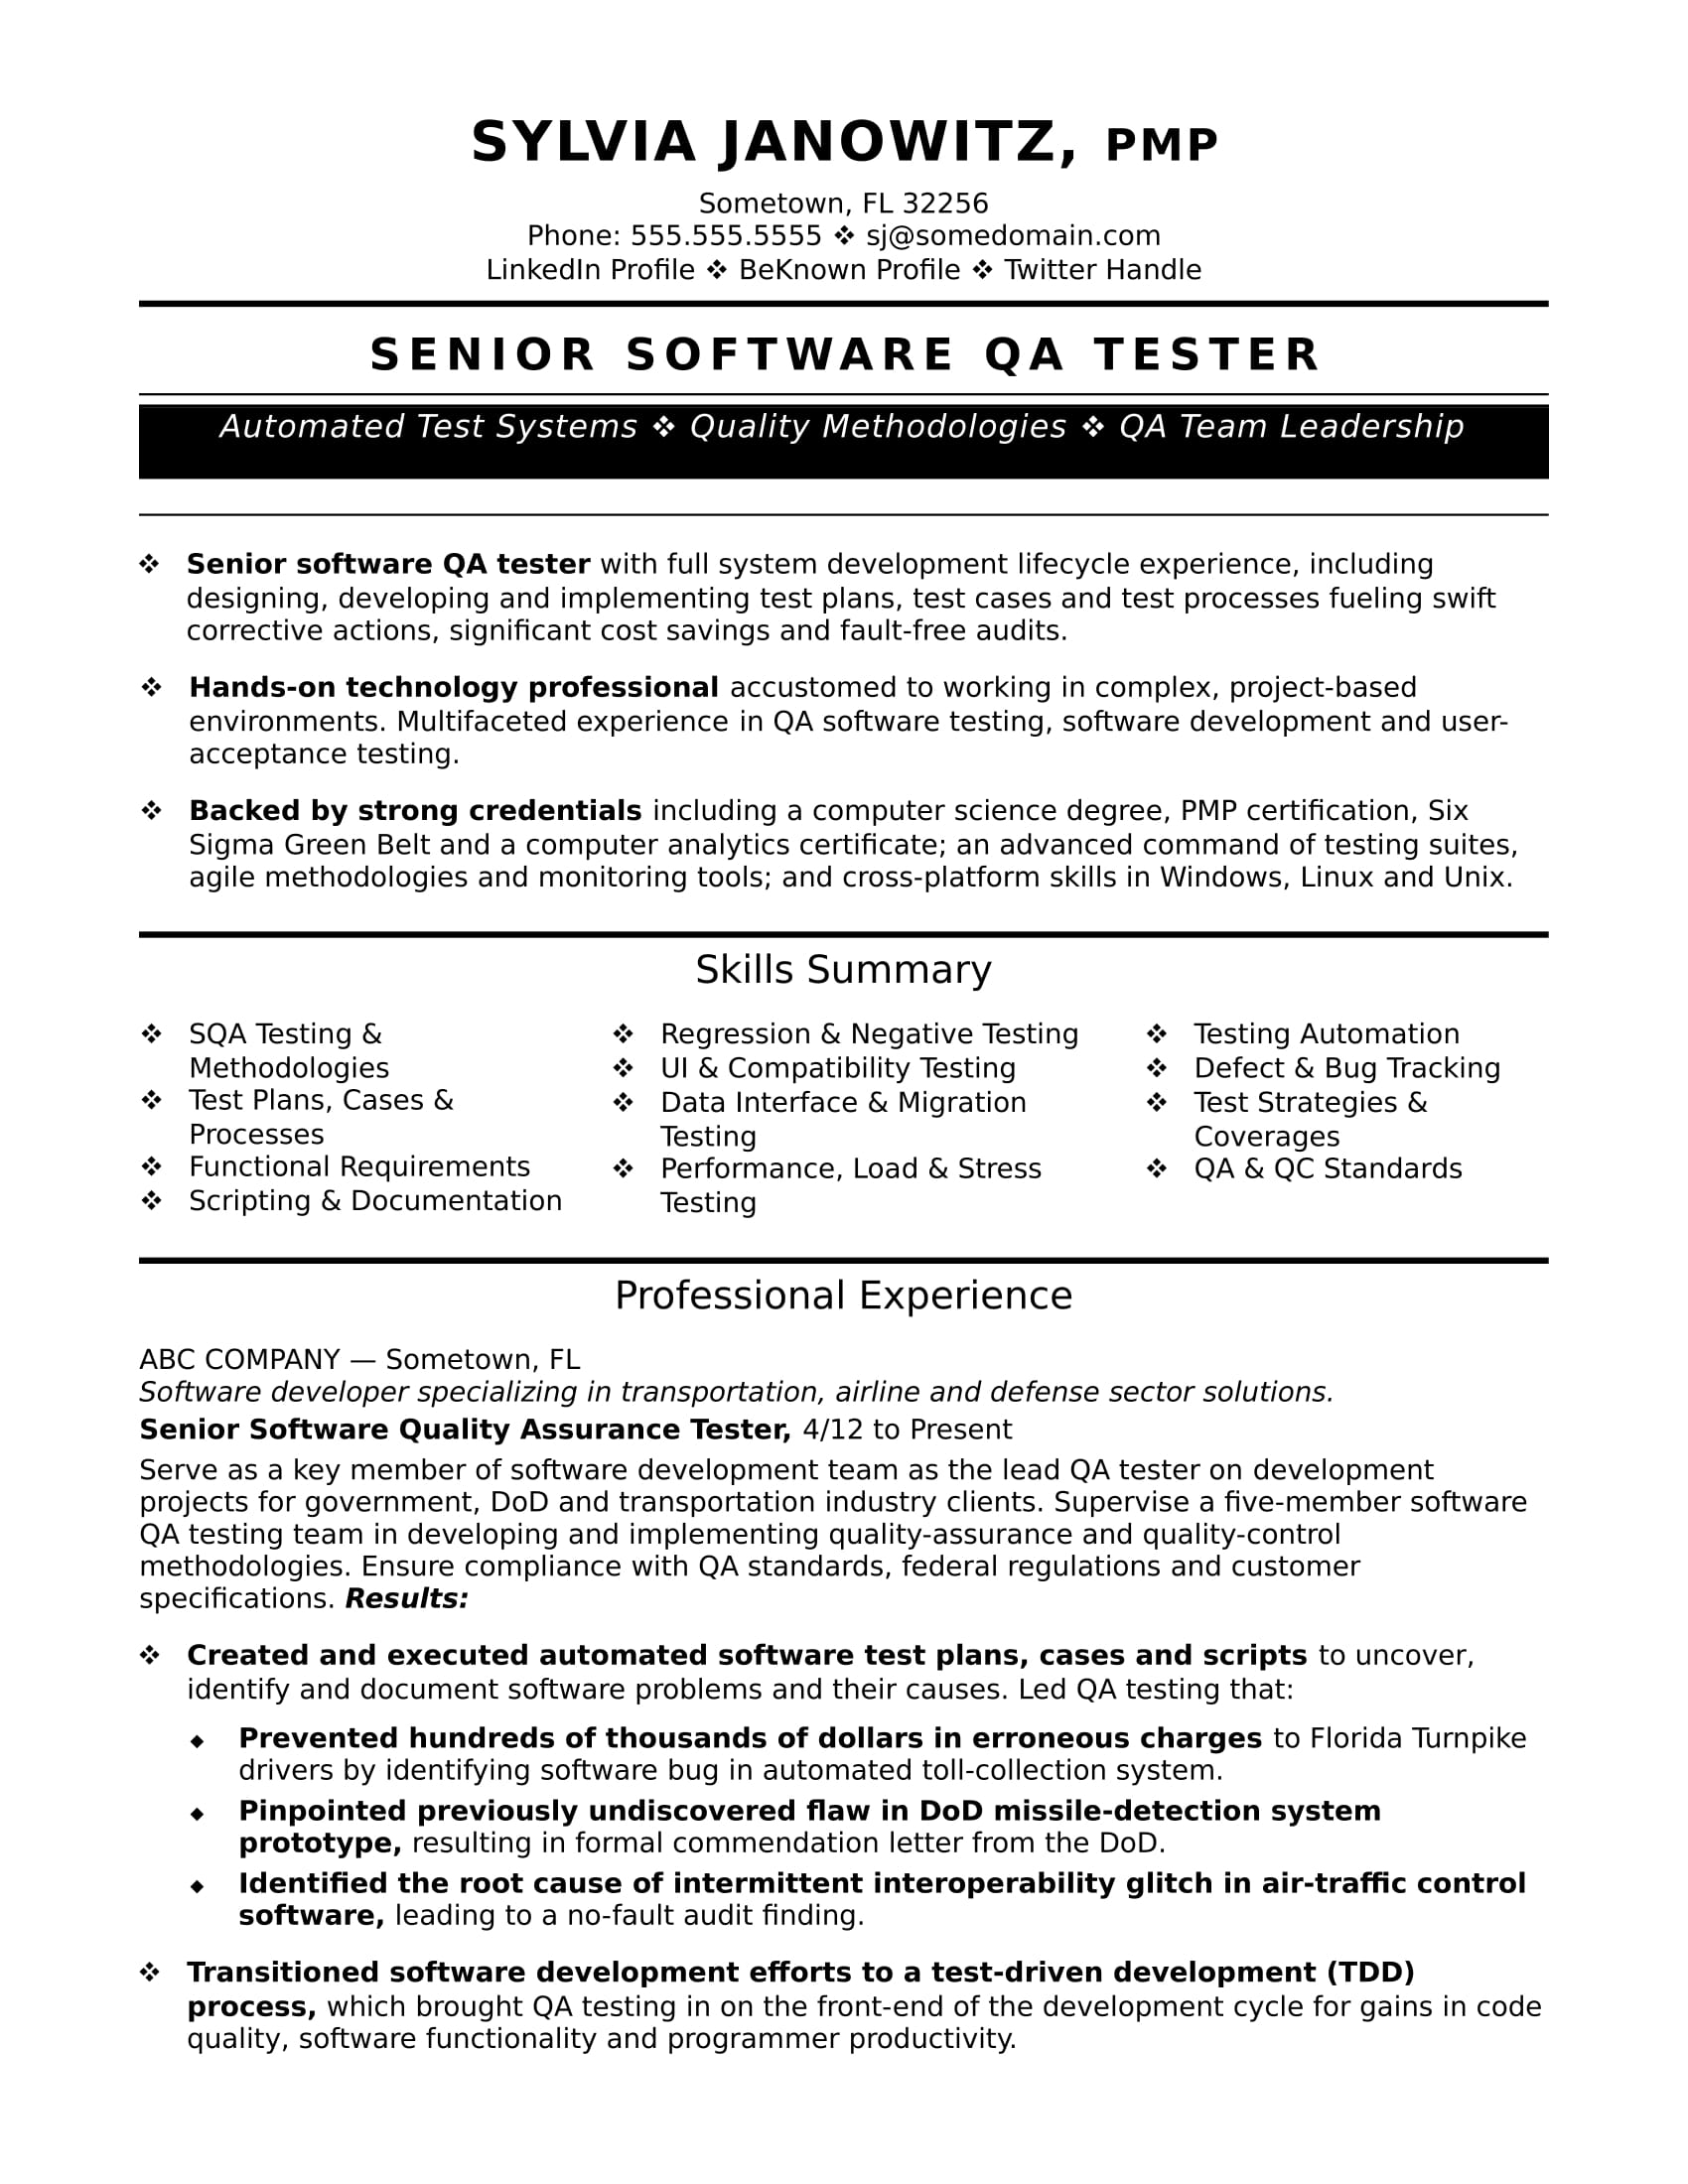 experienced qa software tester resume sample - Resume Sample Skills Computer